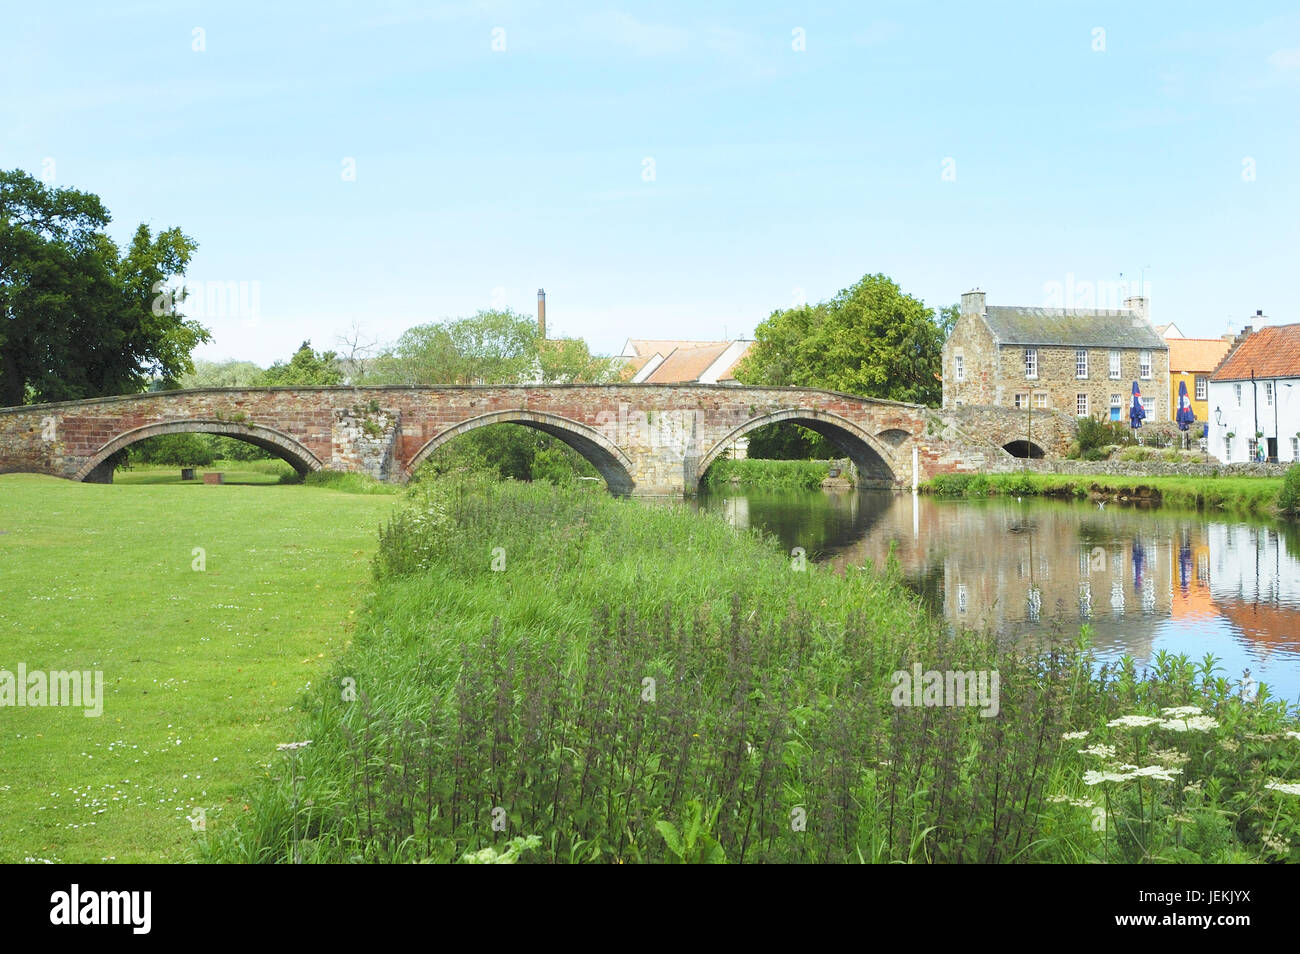 the old bridge over the river Tyne at Haddington, east Lothian, Scotland - Stock Image